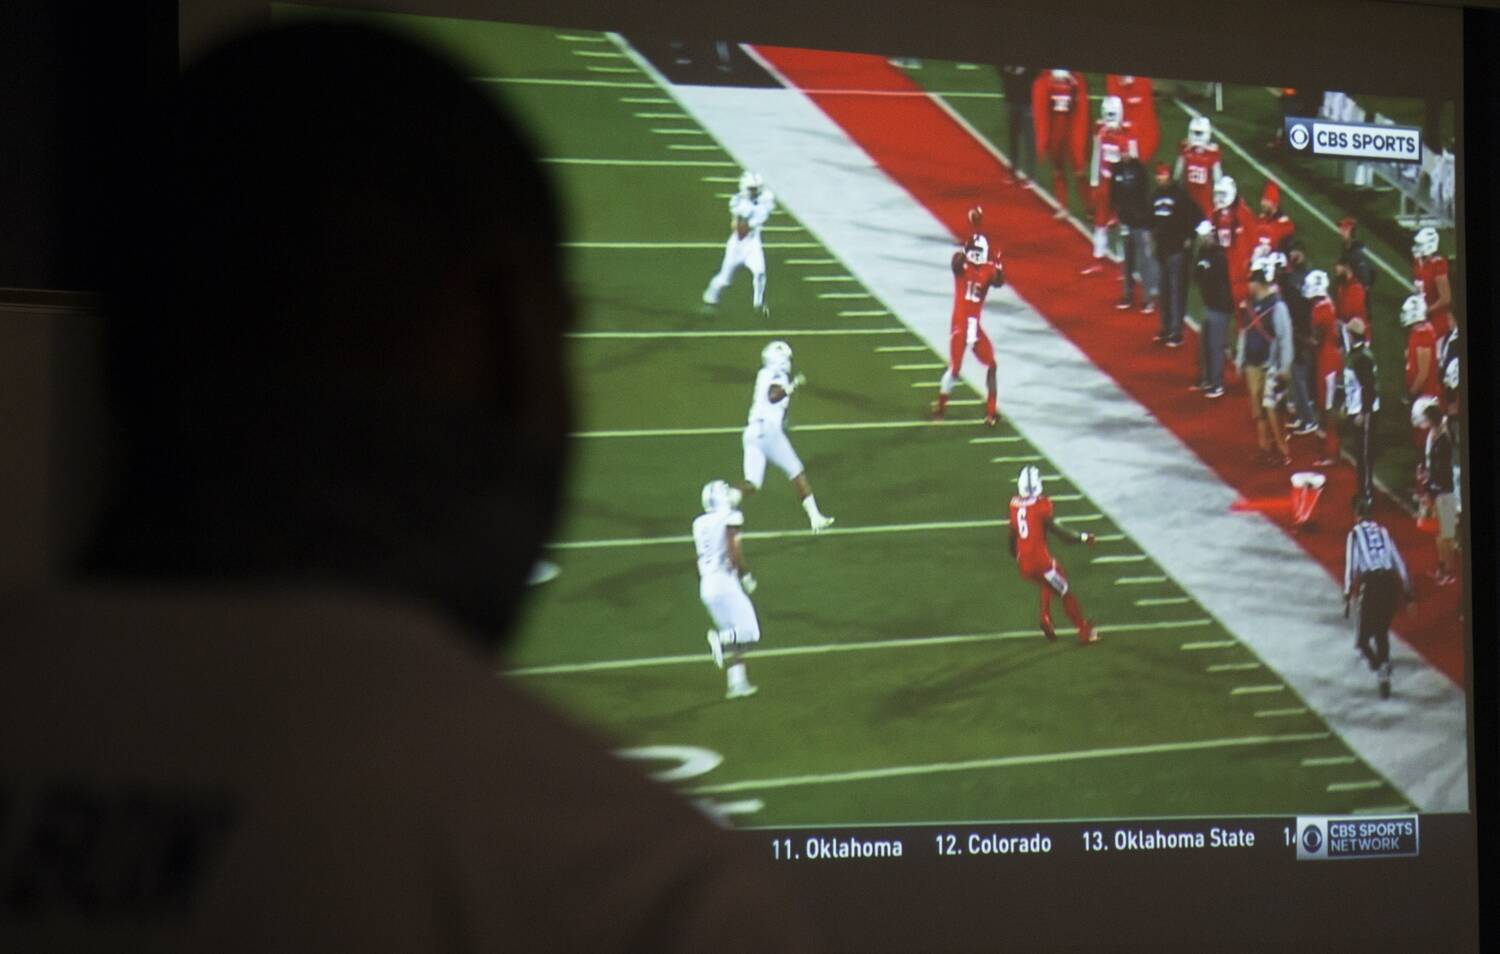 A football game on the TV screen fills the frame, silhouetting a man's head.